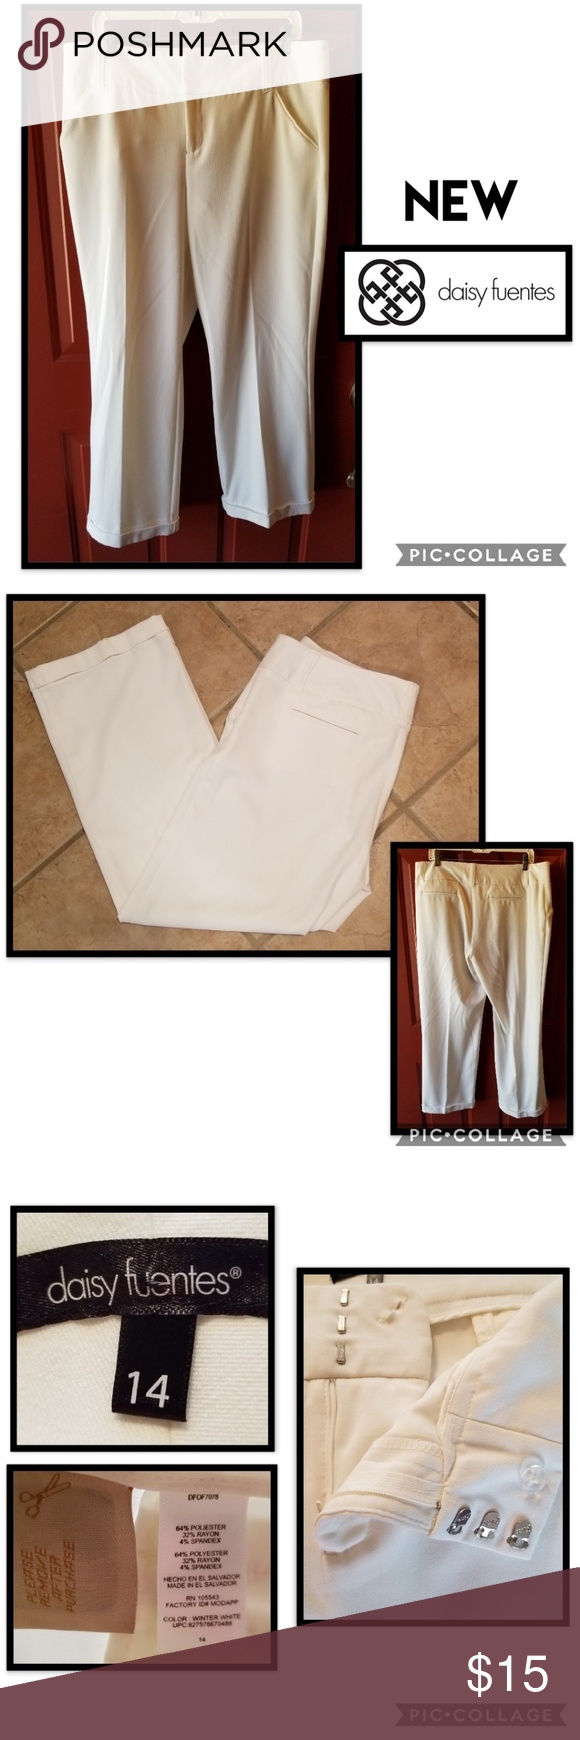 Stunning White Slacks Pants These are simply georgous,  pictures don't do them justice, you will be in complete comfort wearing these flowing, cuffed, and pocketed slacks! Add a blouse or shoes for extra discounts! Daisy Fuentes Pants Trousers #whiteslacks Stunning White Slacks Pants These are simply georgous,  pictures don't do them justice, you will be in complete comfort wearing these flowing, cuffed, and pocketed slacks! Add a blouse or shoes for extra discounts! Daisy Fuentes Pants Trousers #whiteslacks